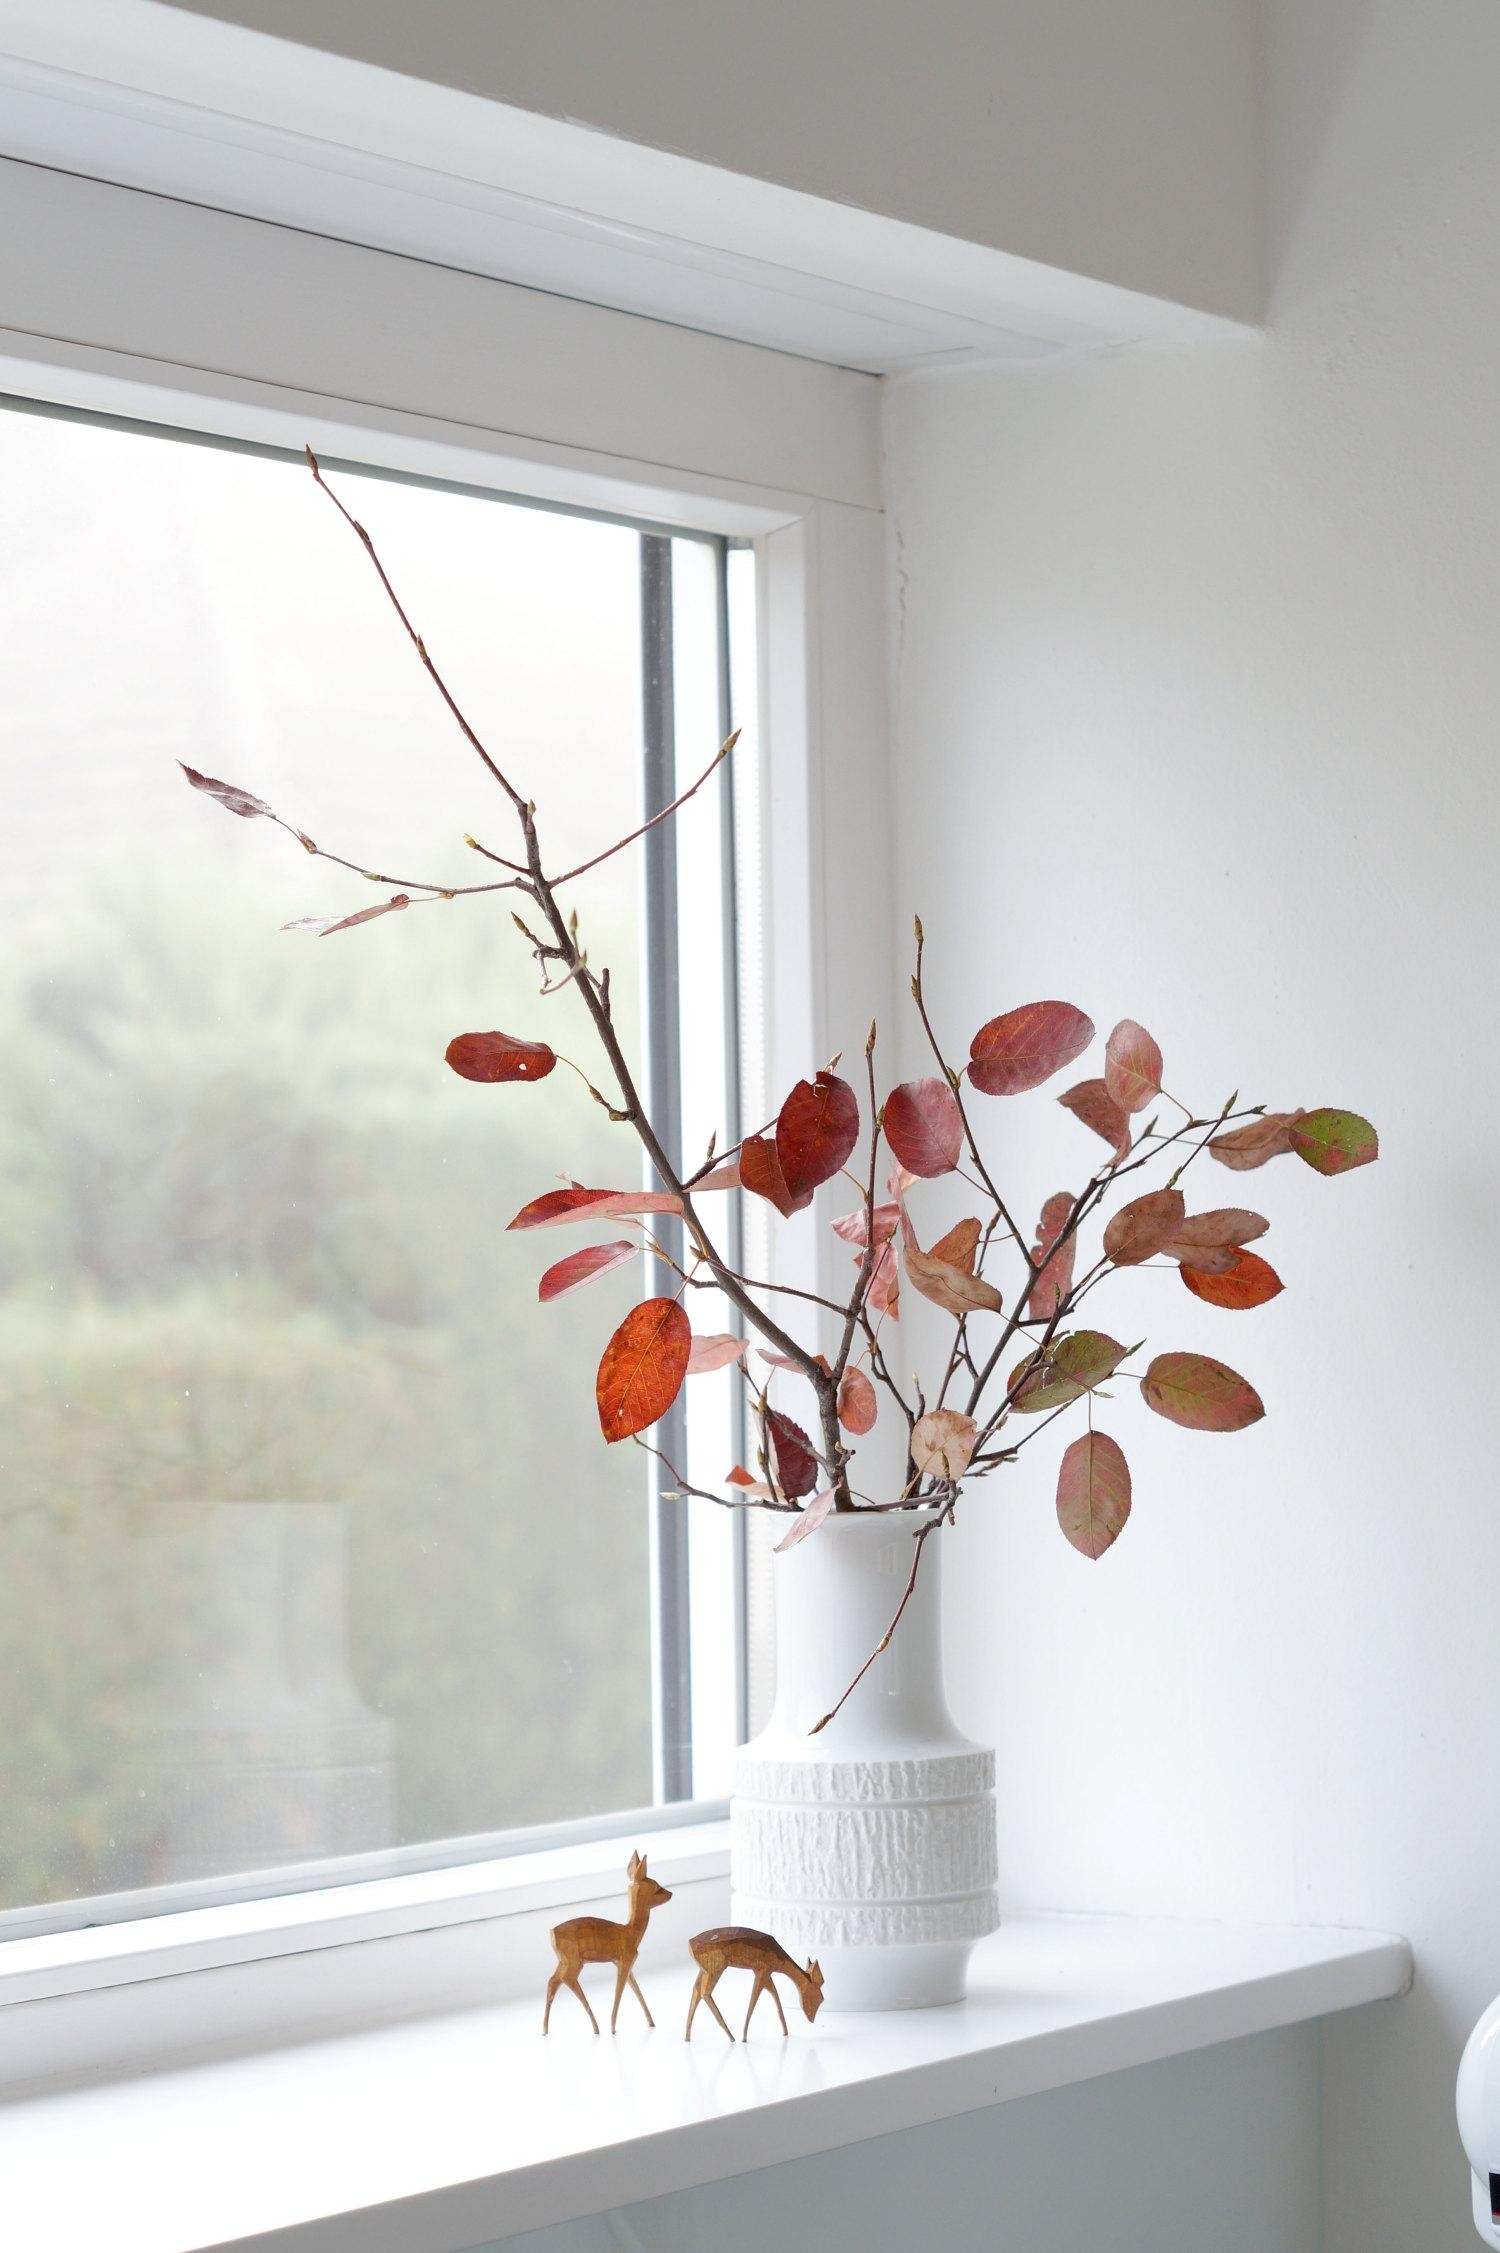 Herbst vintage herbststyling minimalismus reh porzellan  b02d2a58 49c8 41cd ae4f 7ff033612fe7